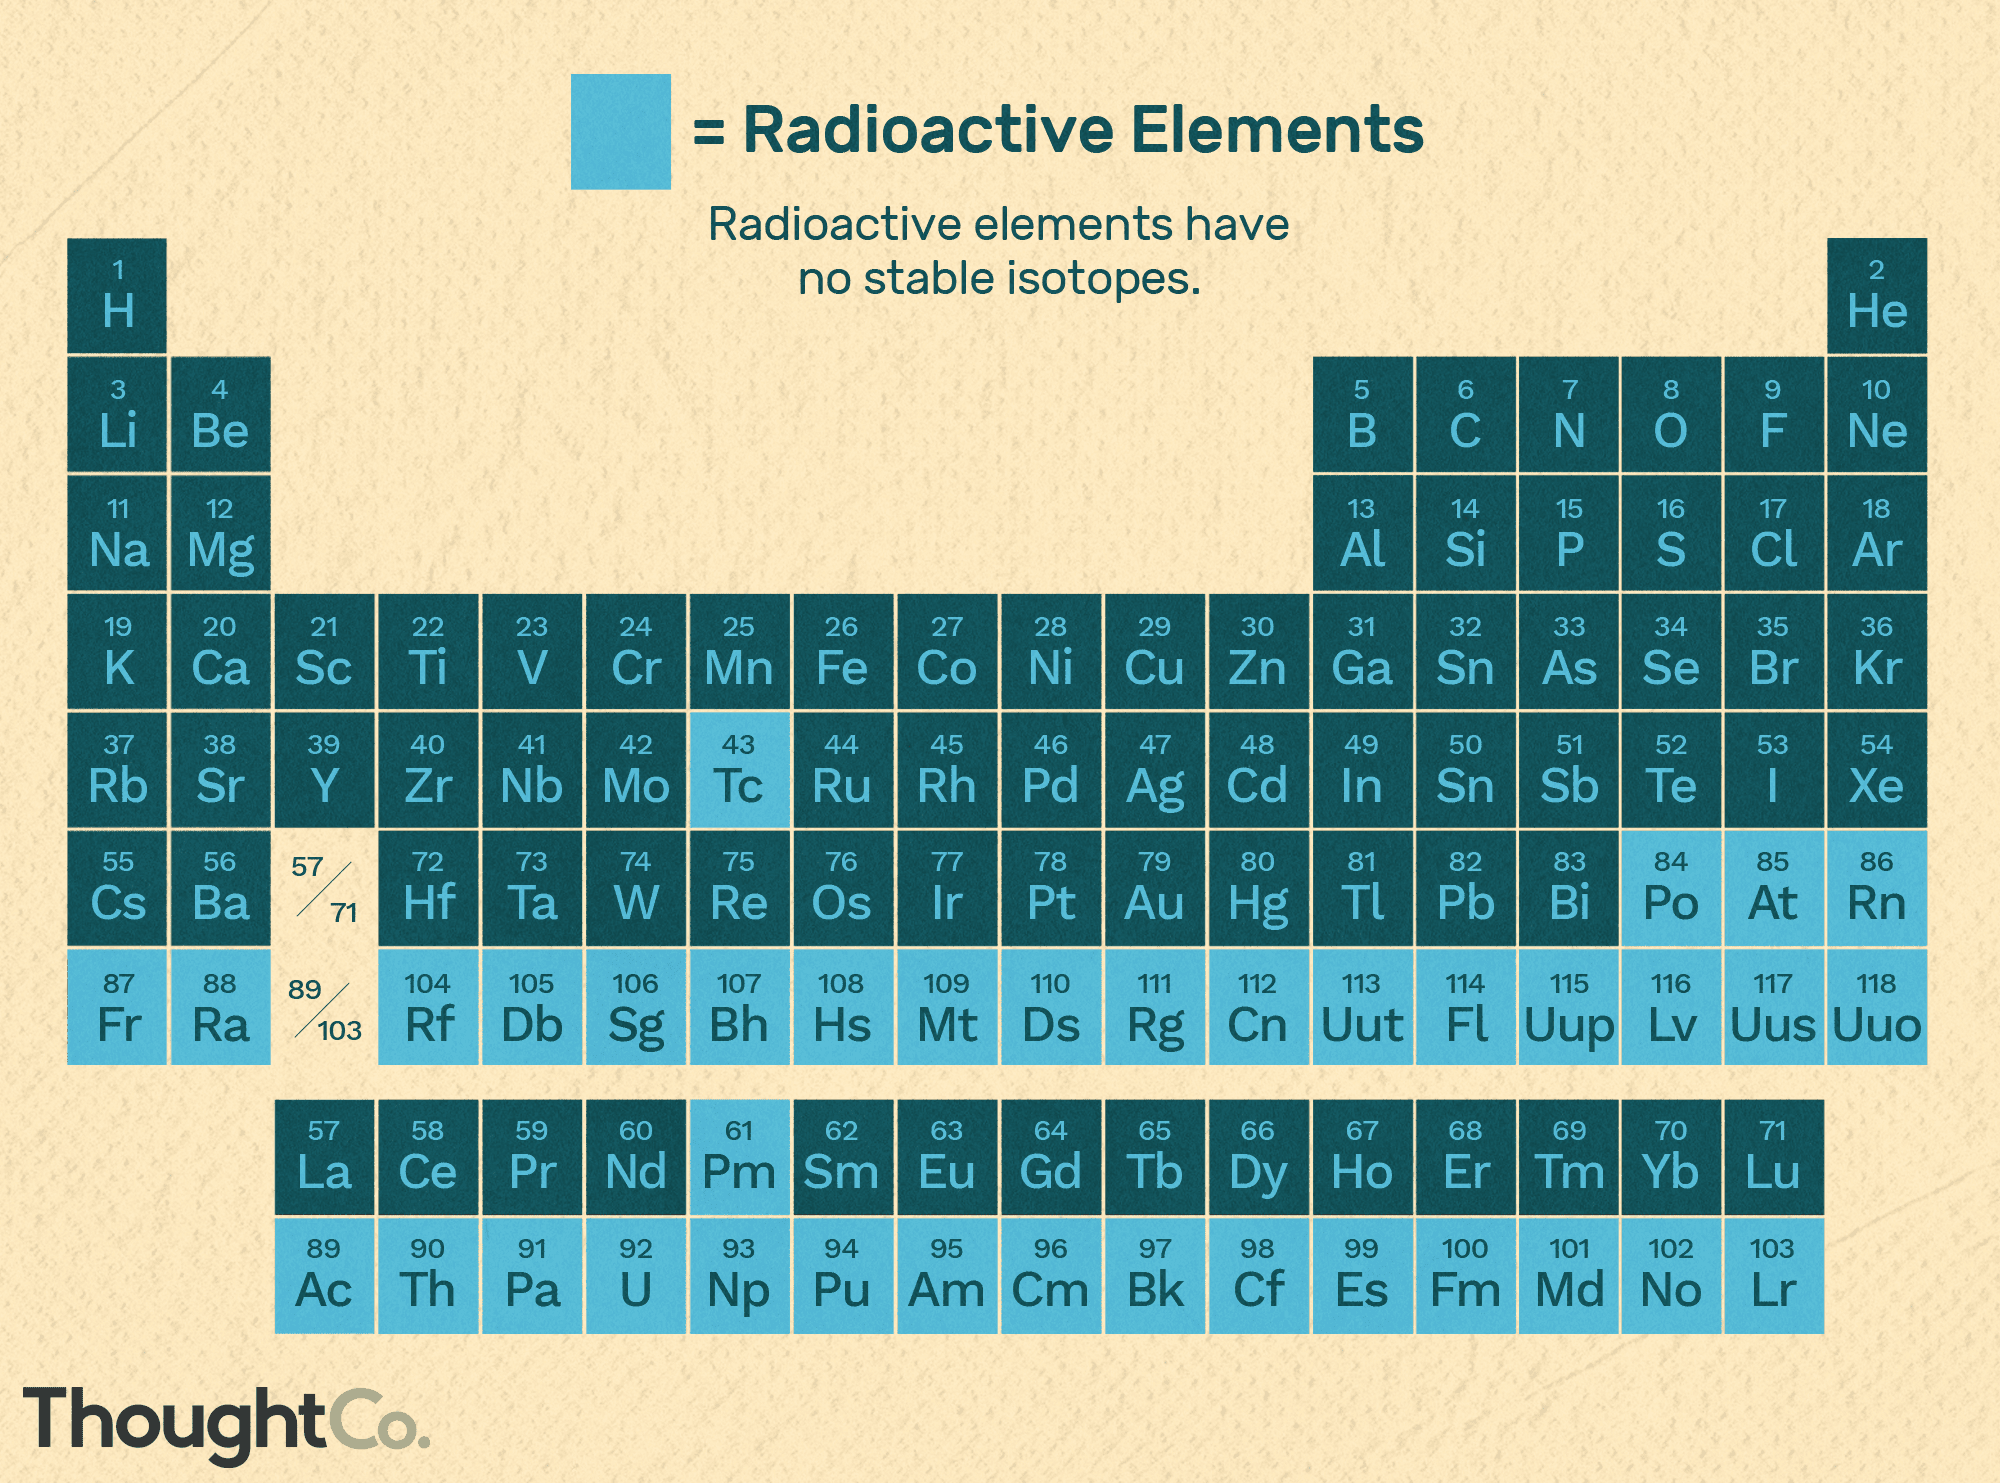 A List of Radioactive Elements